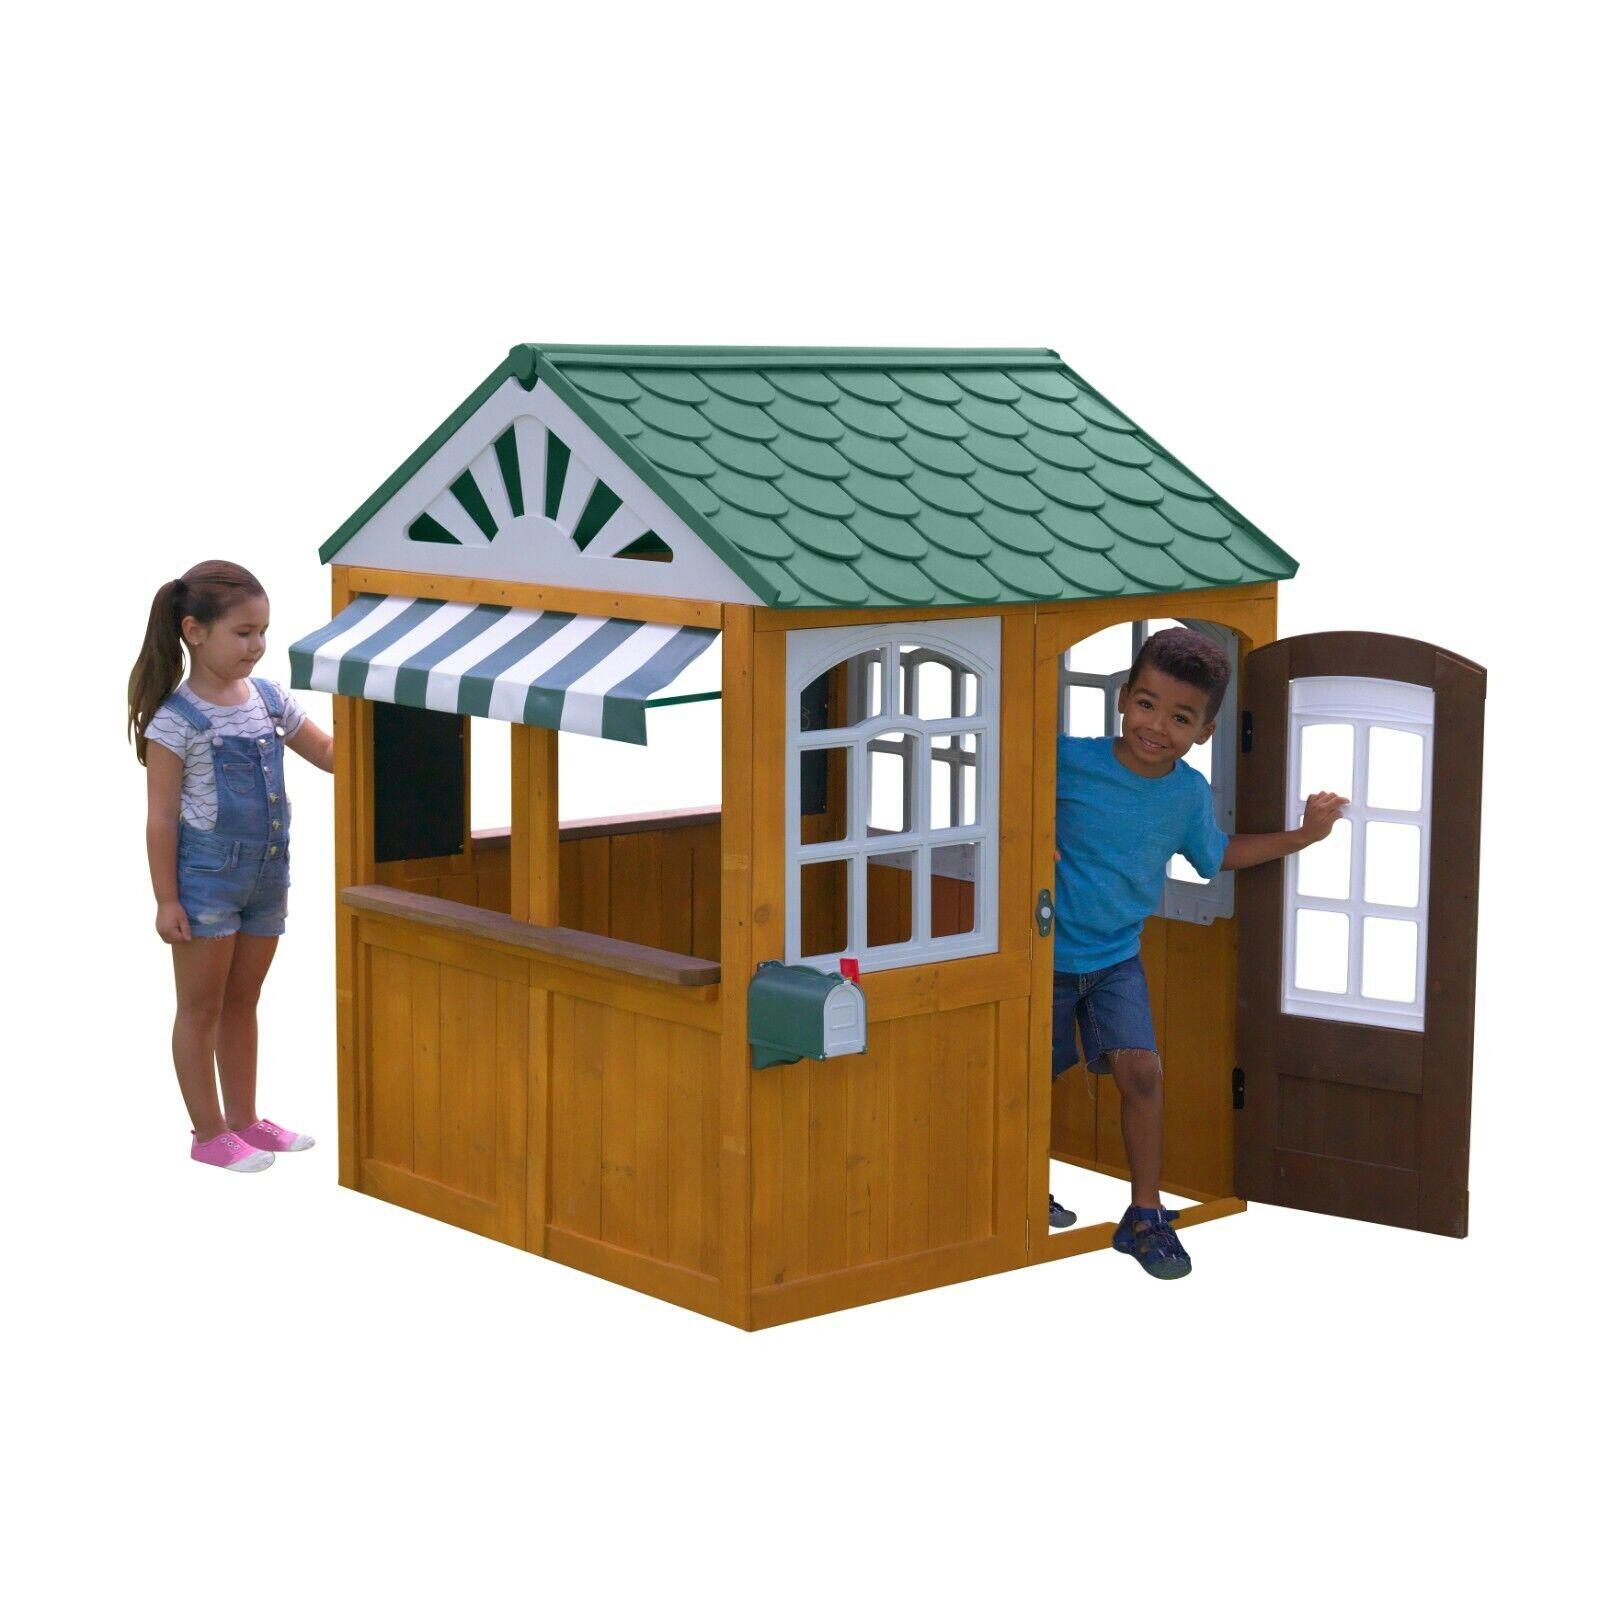 Garden View Outdoor Playhouse Outdoor Toys and Structures Ho